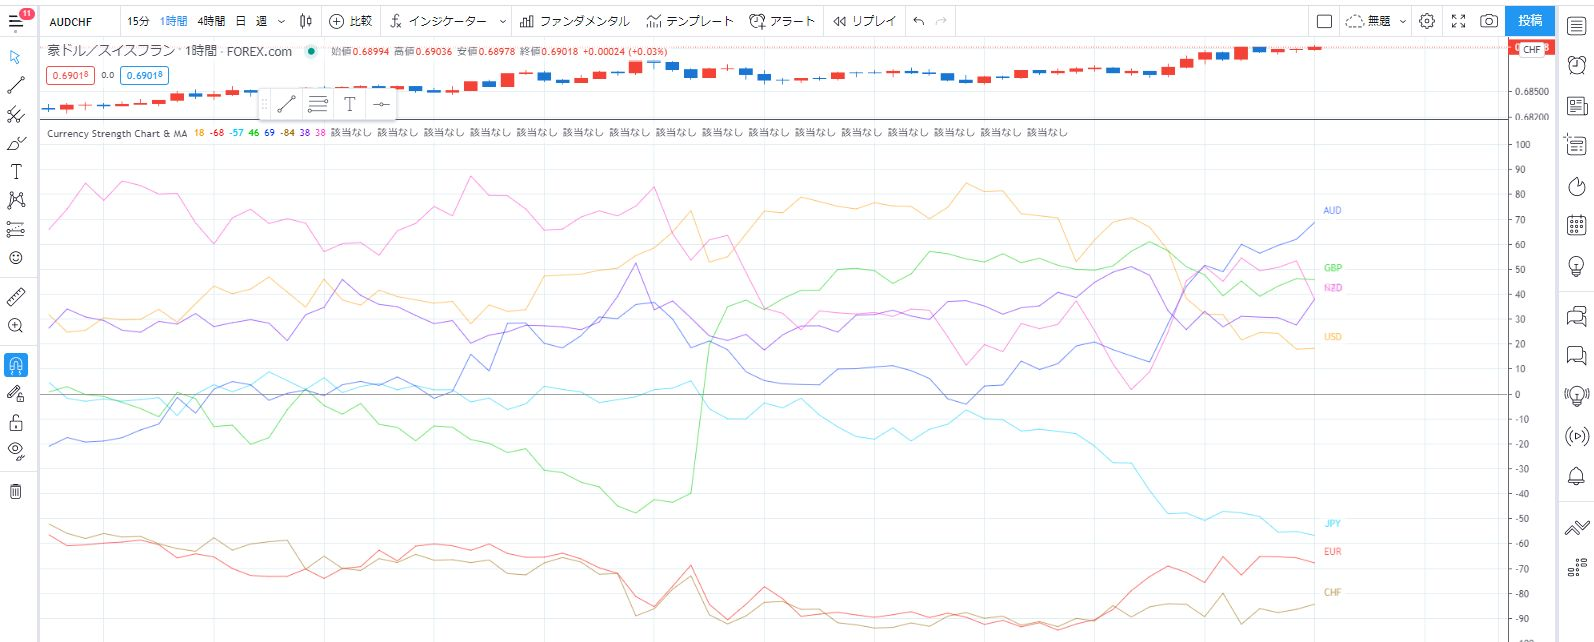 Currency Strength Chart&MA